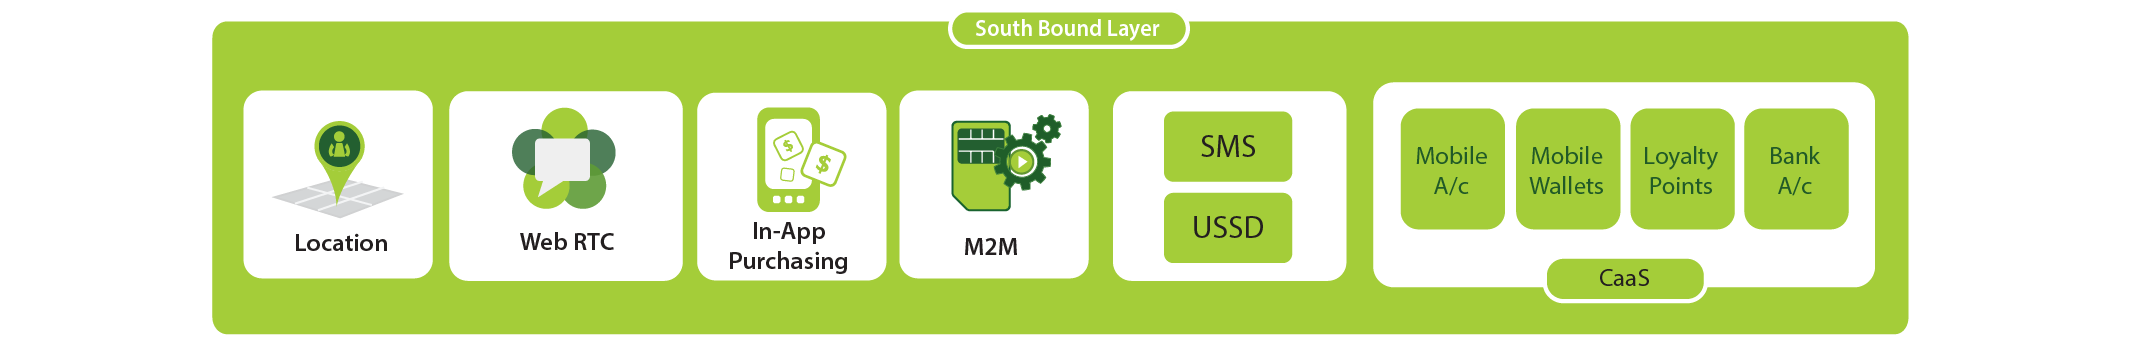 South Bound Layer